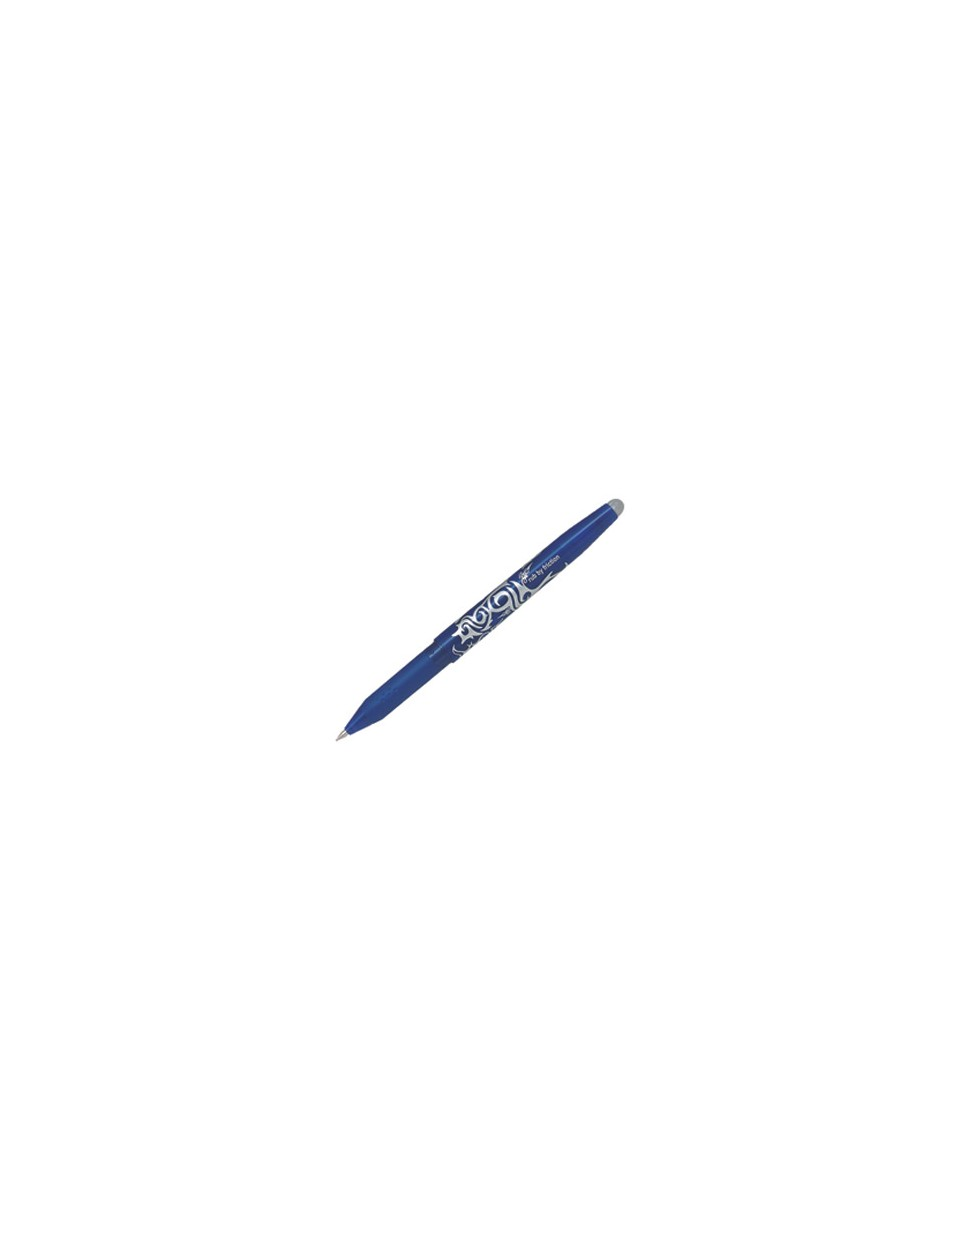 Rollerball Frixion BL-FR7 Pilot